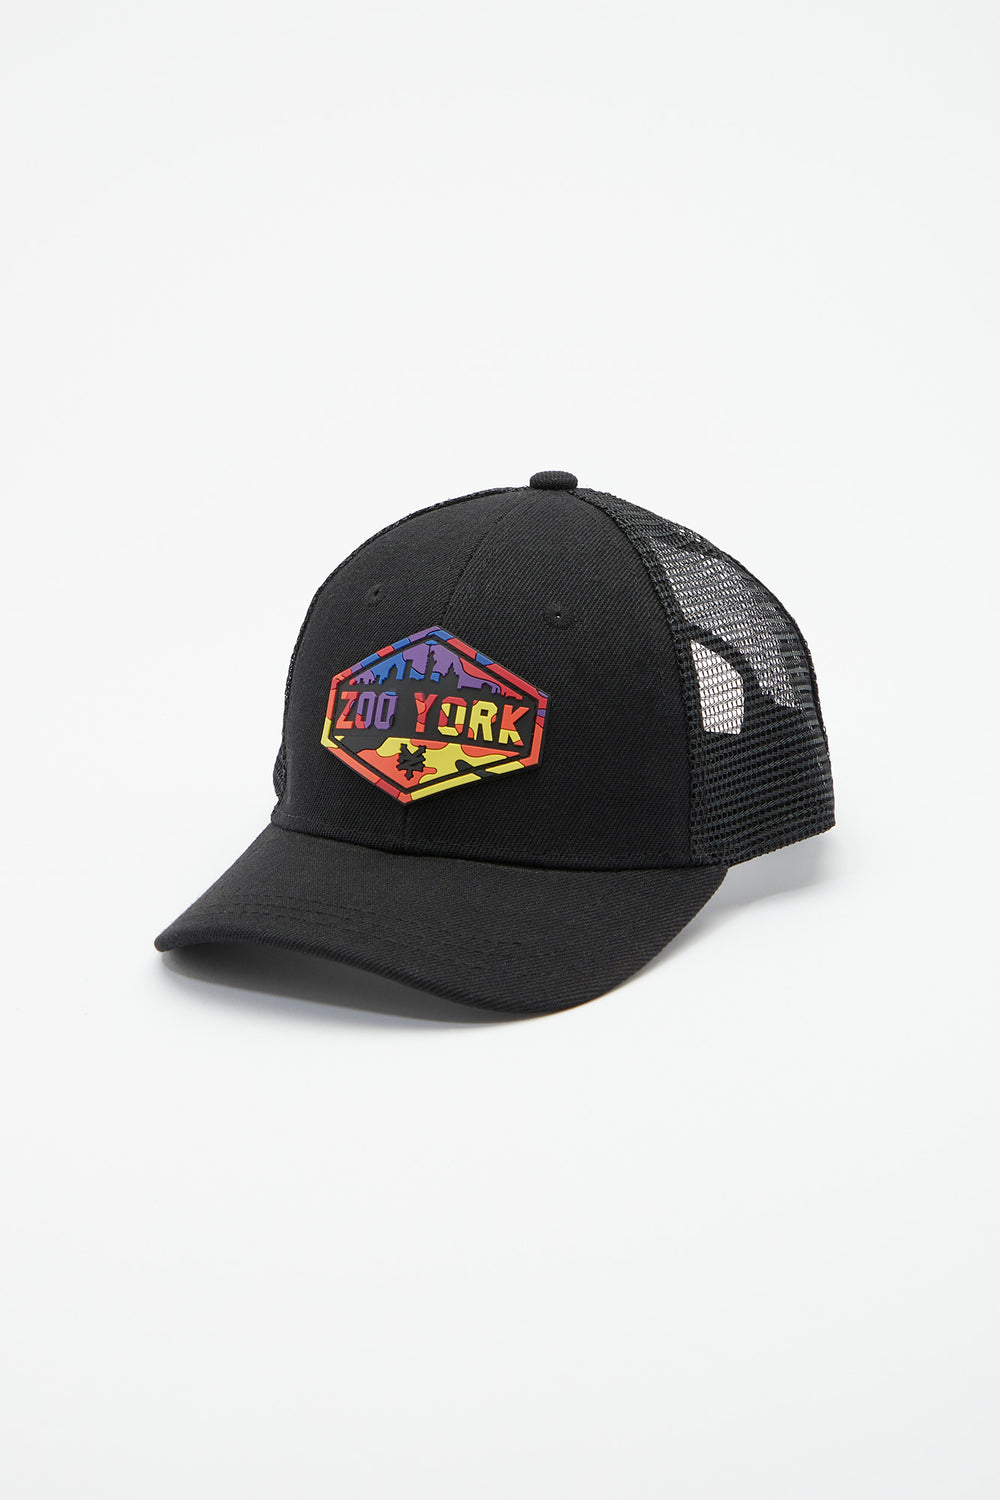 Zoo York Youth Rainbow Camo Logo Trucker Hat Black